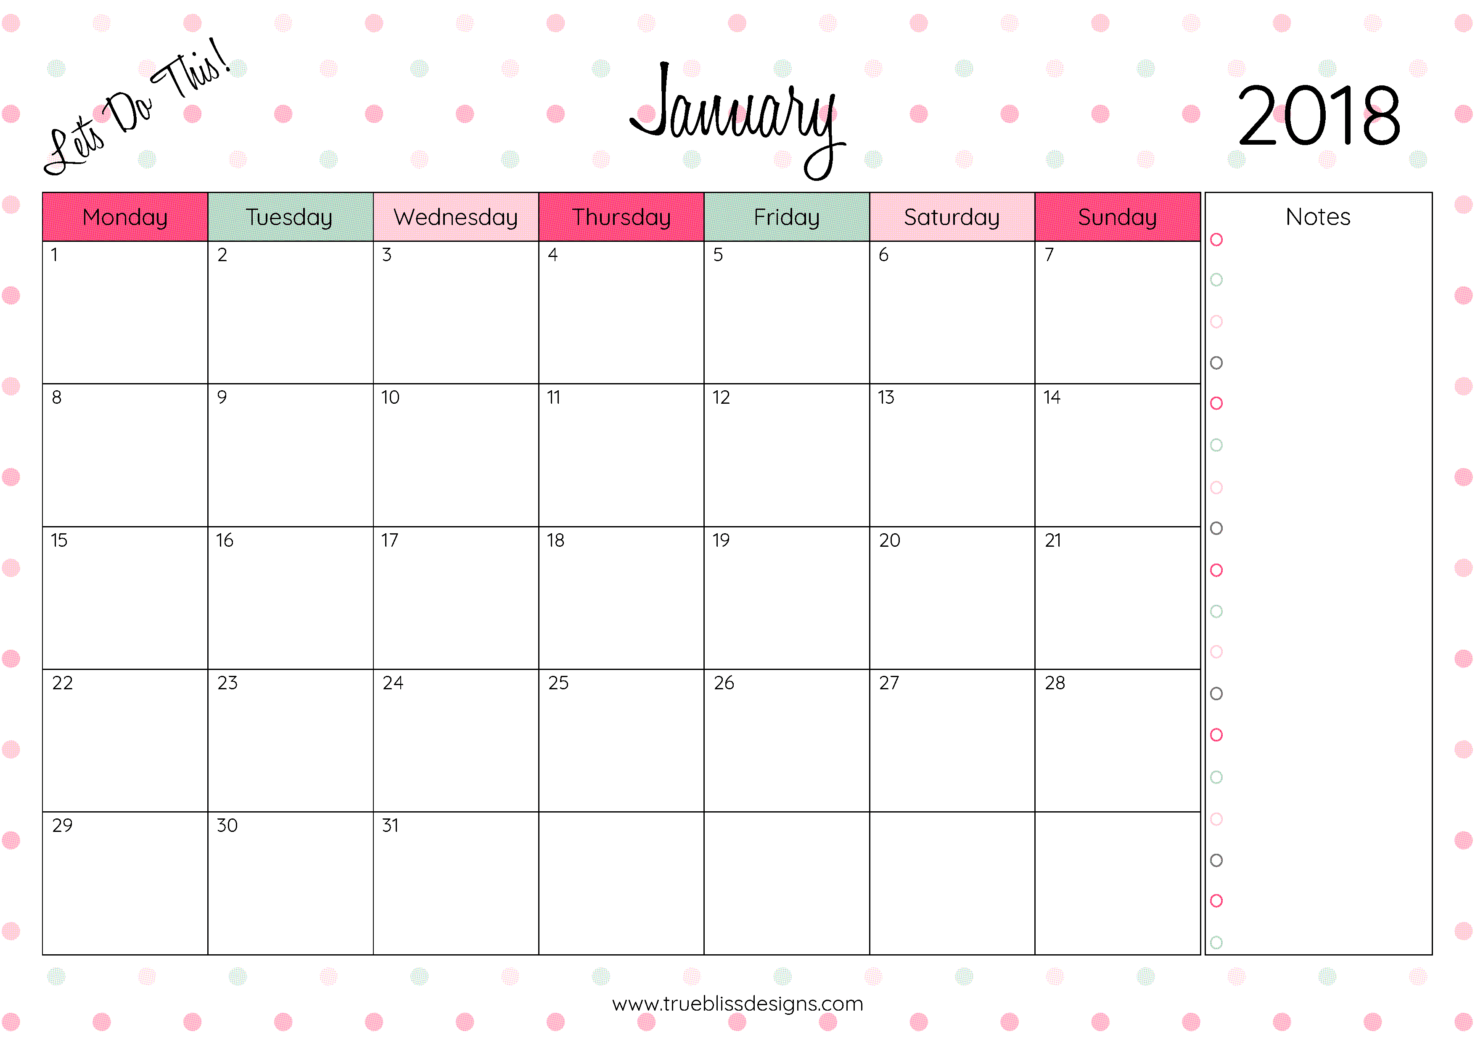 Calendar Monthly Printable : Monthly printable calendar let s do this true